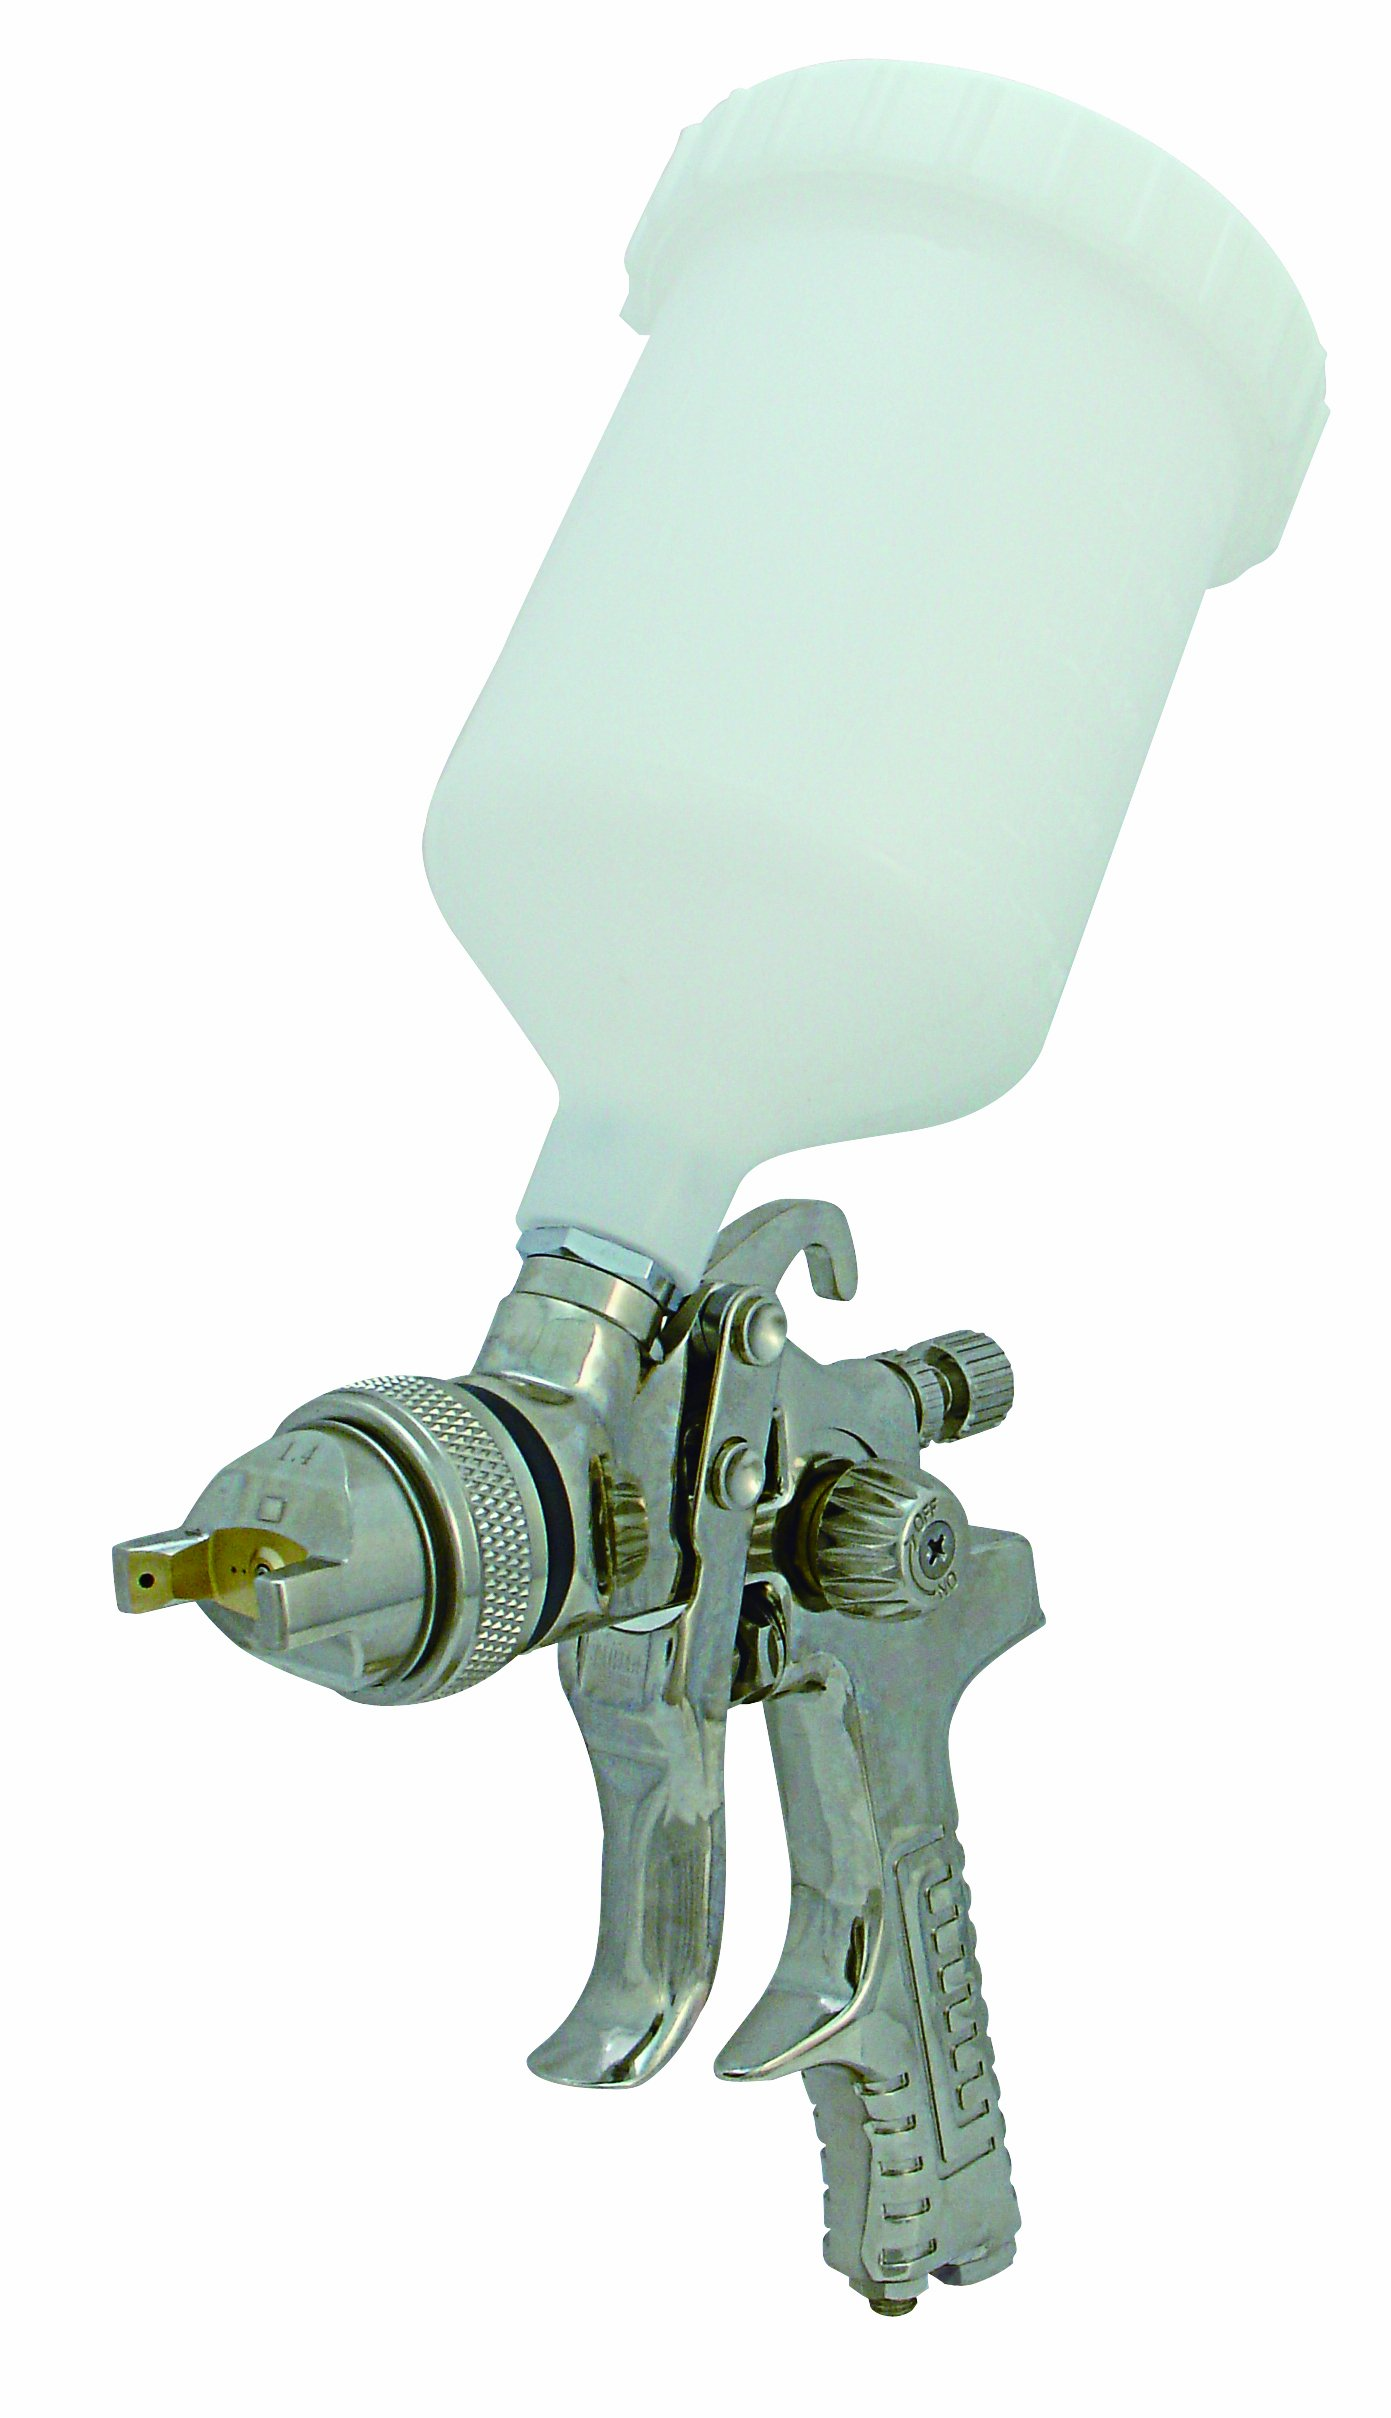 Astro GF14S Gravity Feed Spray Gun with 1.4mm Nozzle